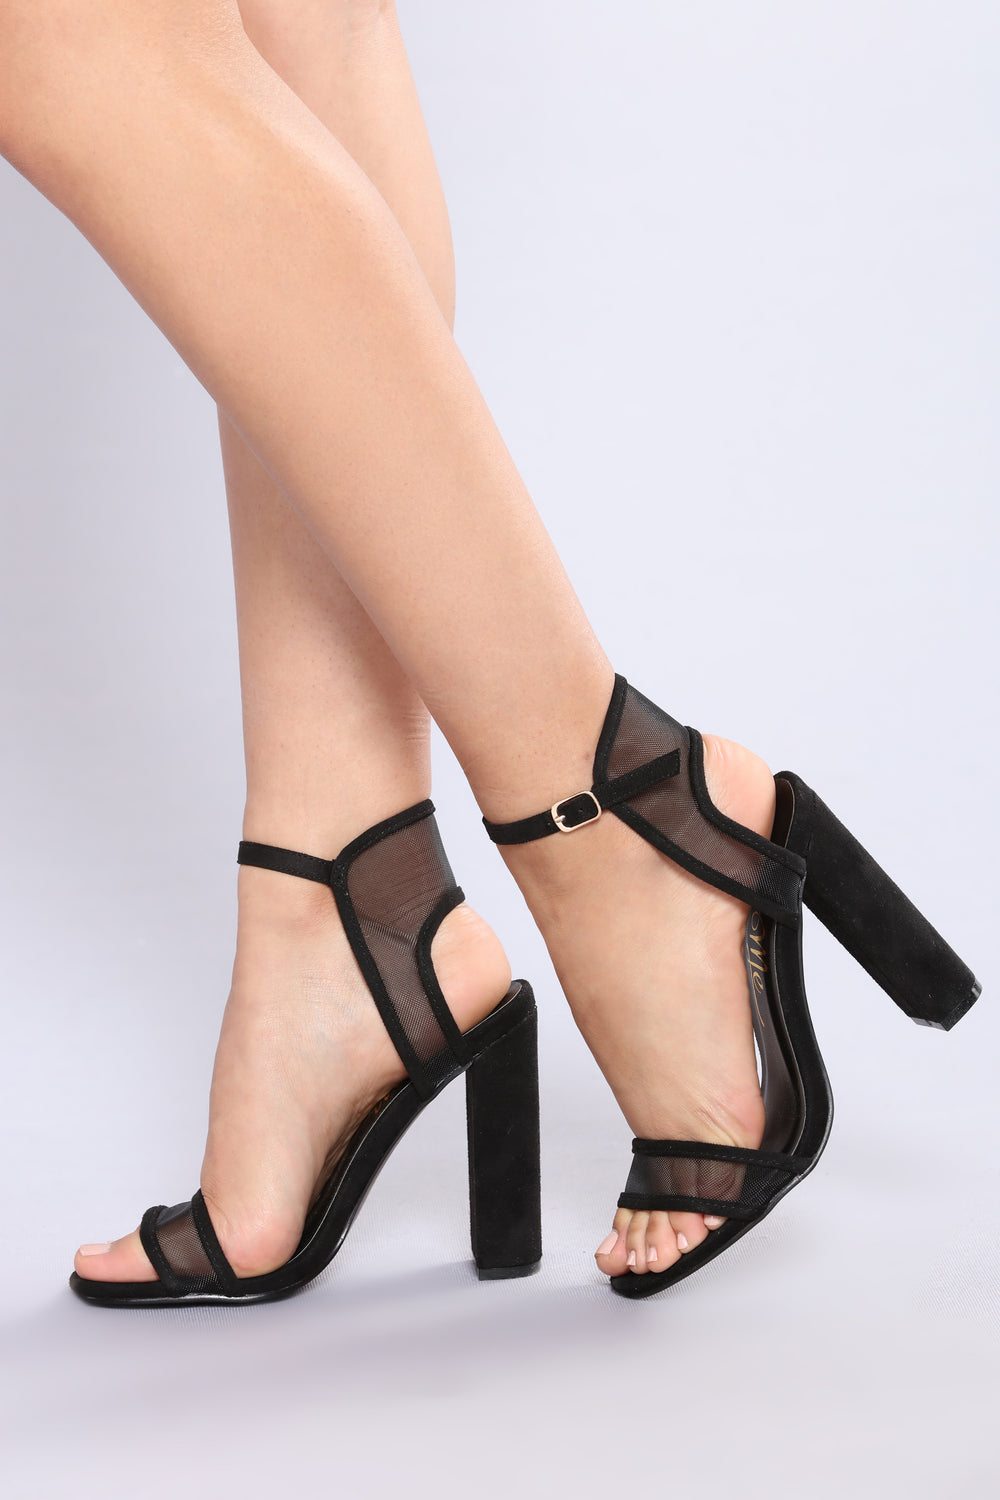 See Right Through Me Heel - Black